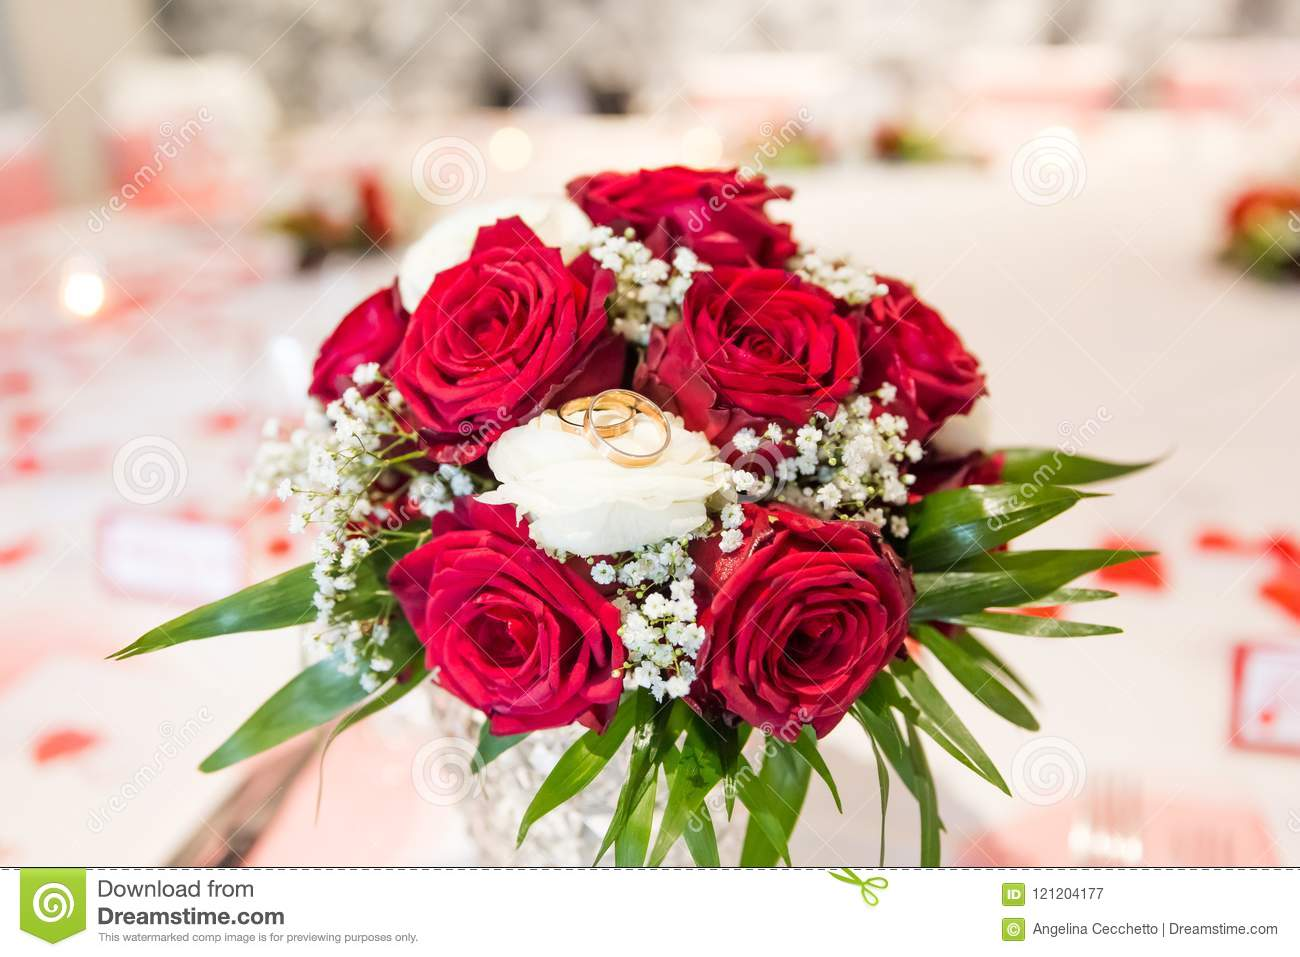 Wedding Rings On White And Red Roses Bridal Bouquet Stock Image